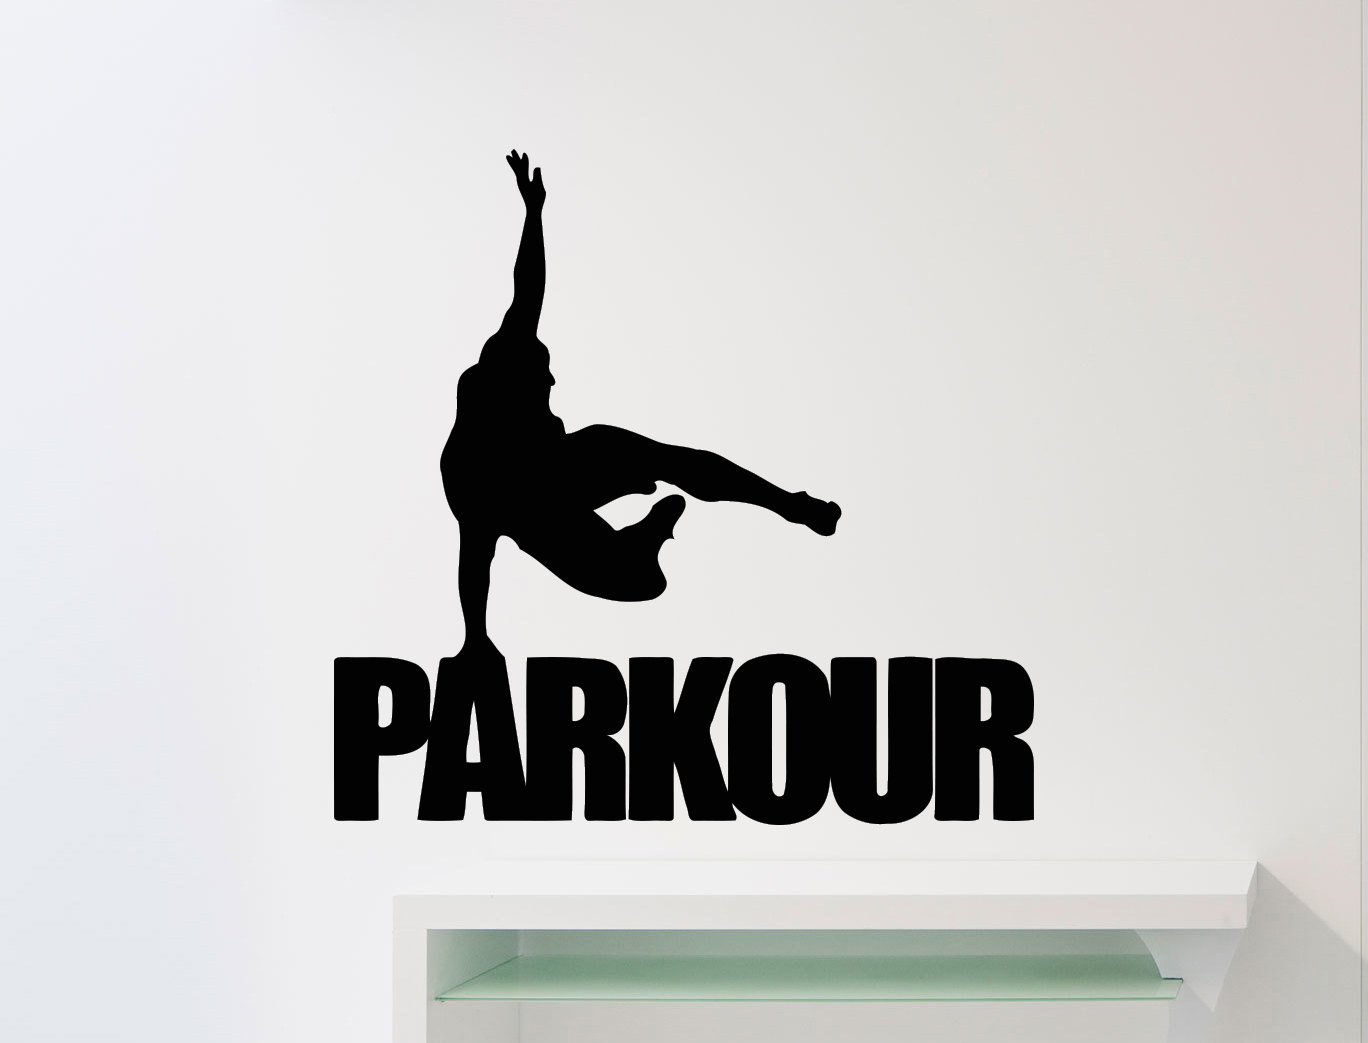 Parkour pared Sticker calle Traceur deporte vinilo Decal Home | Etsy